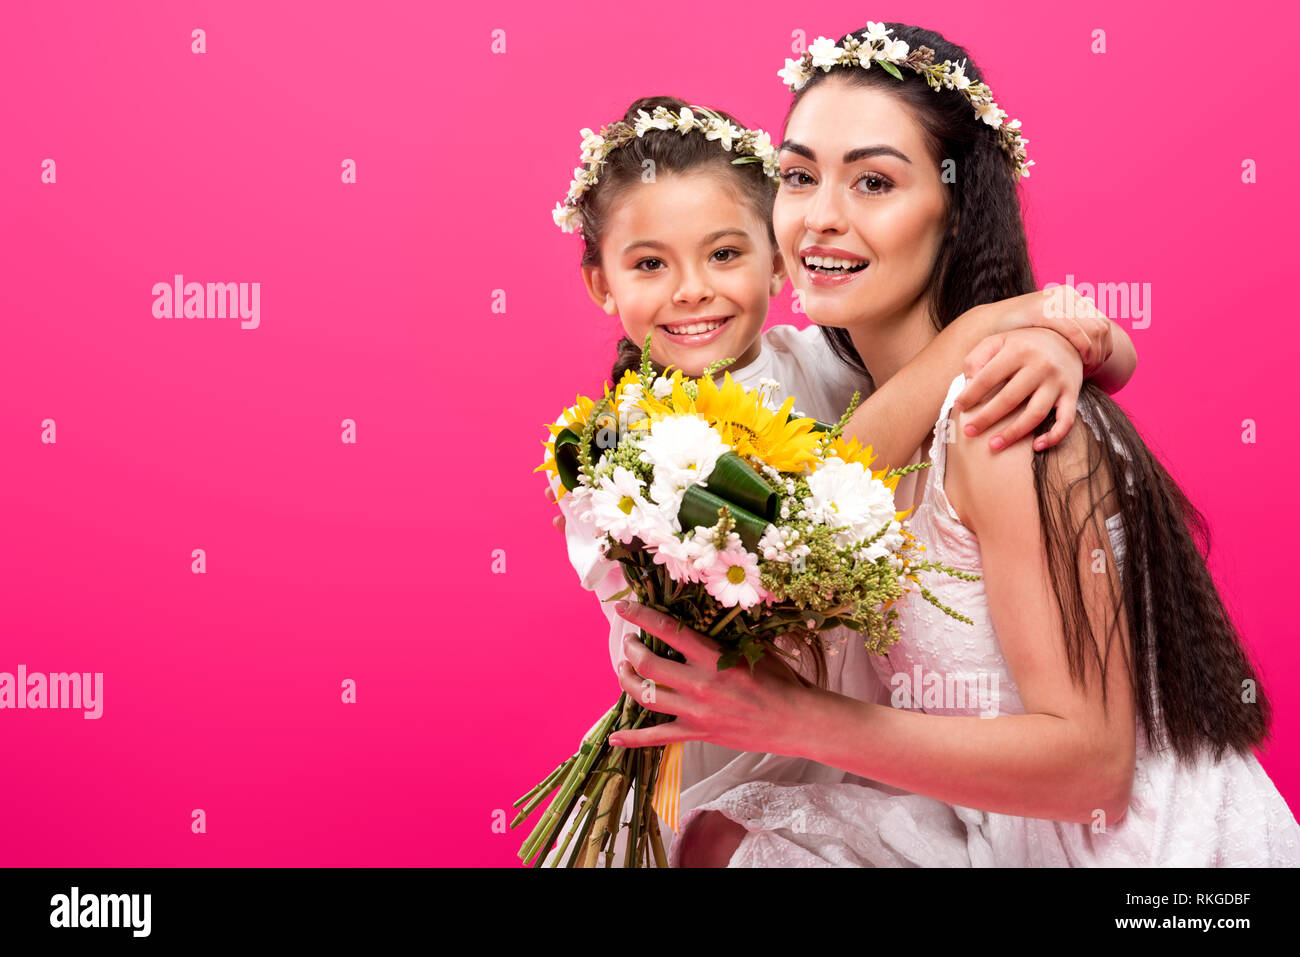 d525c8a09d beautiful happy mother and daughter with flower bouquet hugging and smiling  at camera isolated on pink